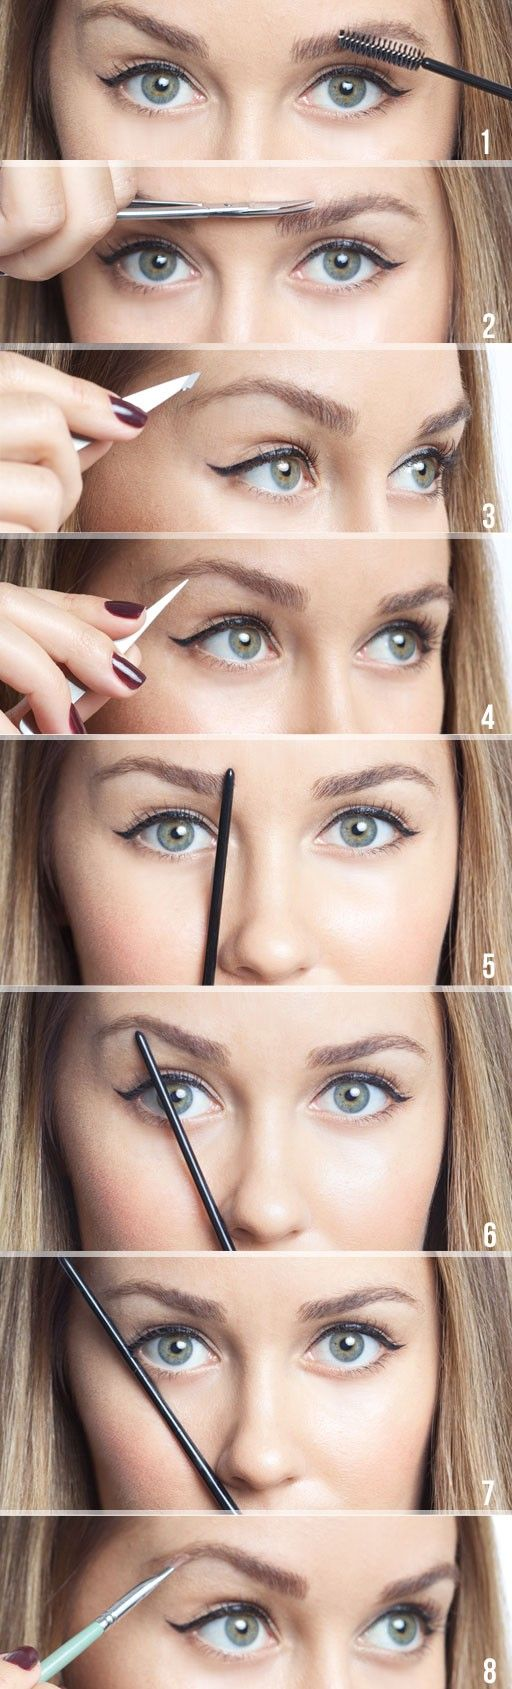 eyebrows - Click image to find more Hair & Beauty Pinterest pins